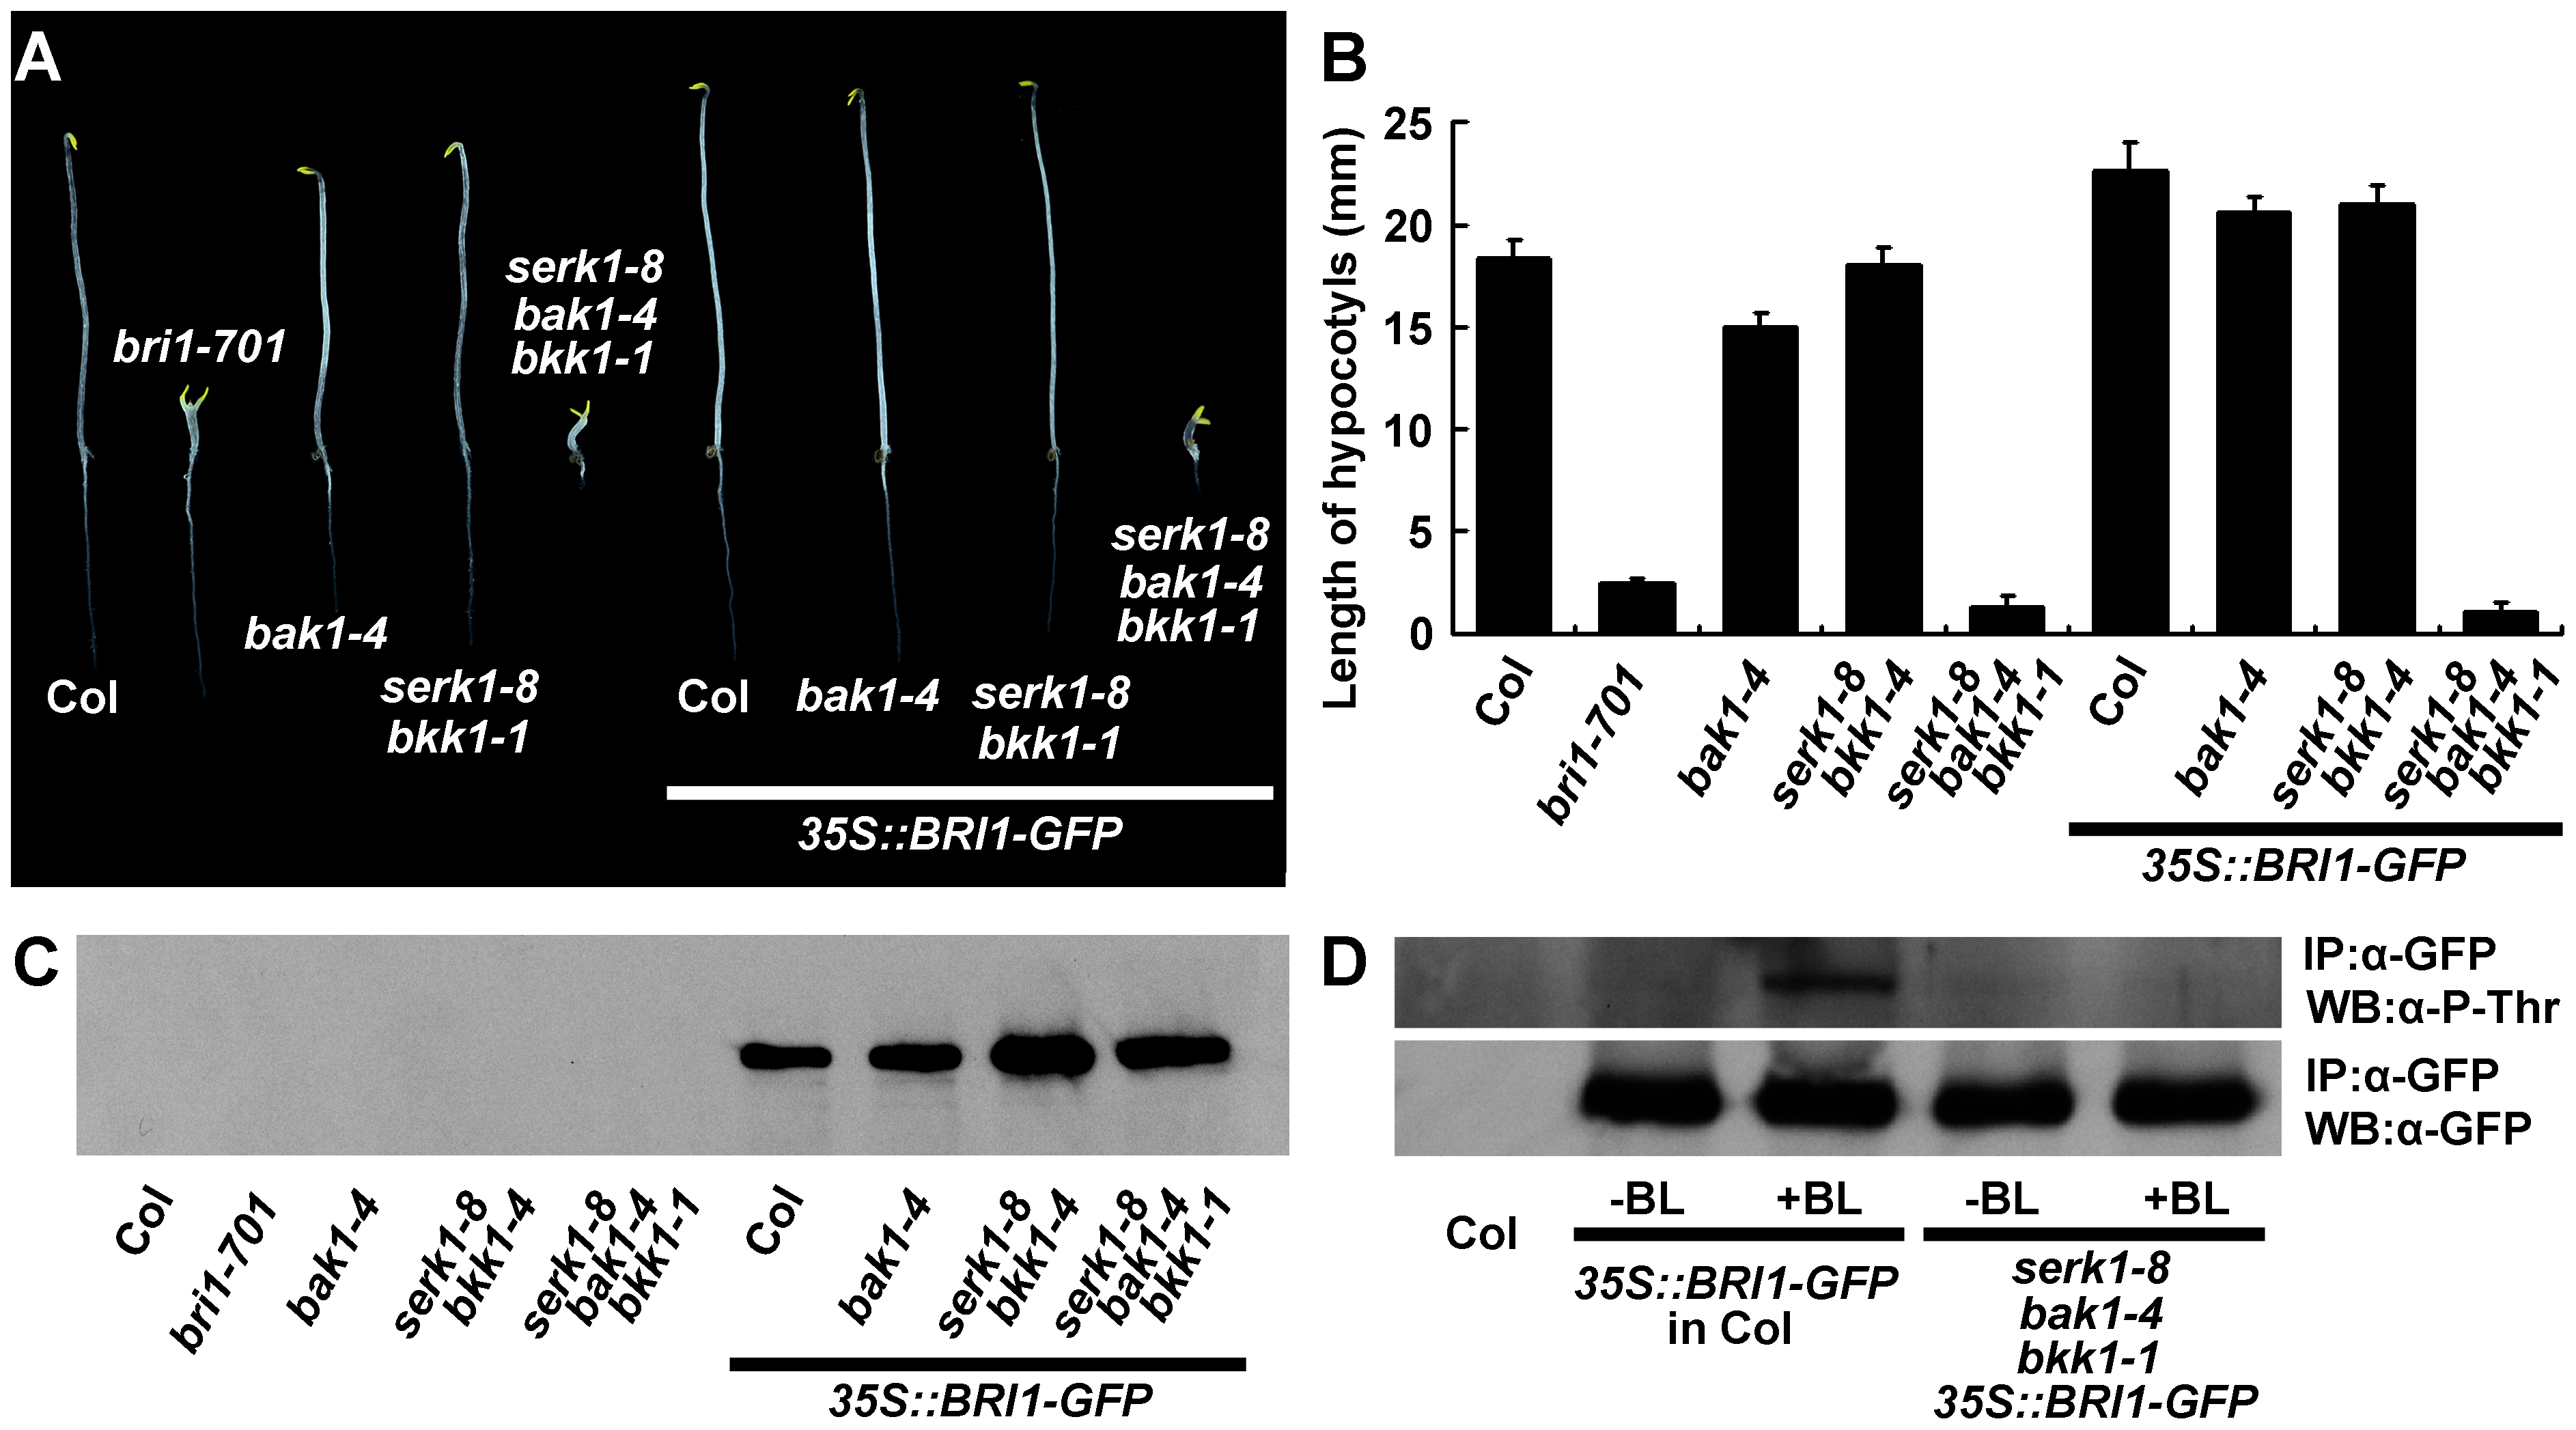 Overexpression of <i>BRI1</i> dramatically increases hypocotyl growth of wild type but does not promote hypocotyl growth of <i>serk1-8 bak1-4 bkk1-1</i>.